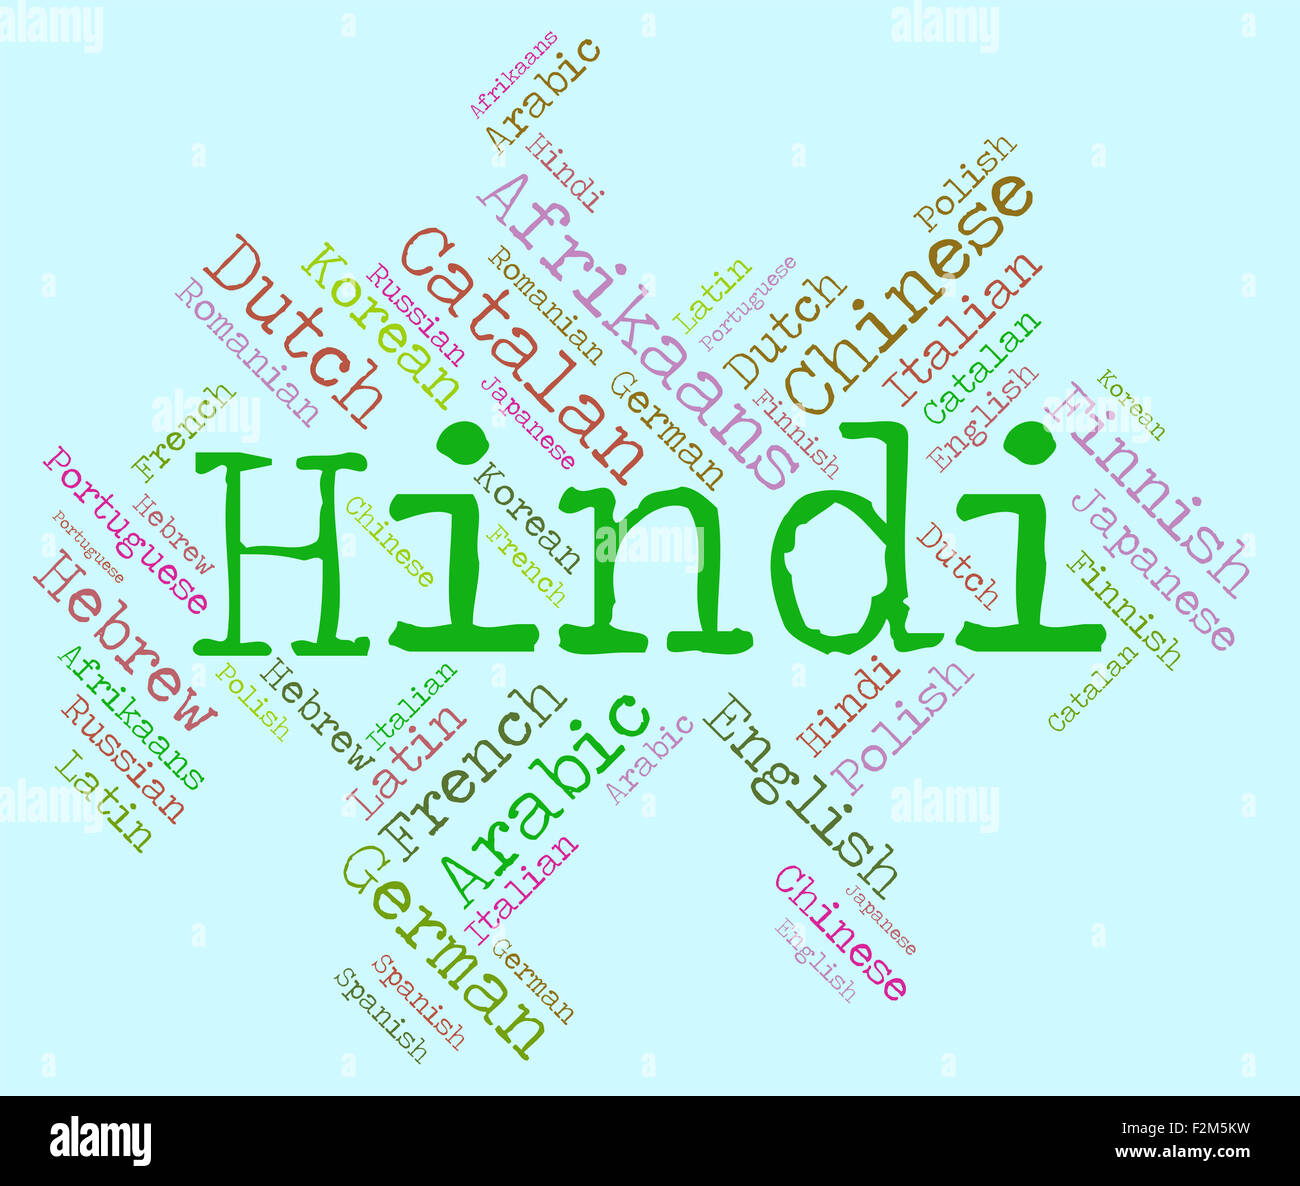 Hindi language meaning languages words and india stock photo hindi language meaning languages words and india ccuart Choice Image